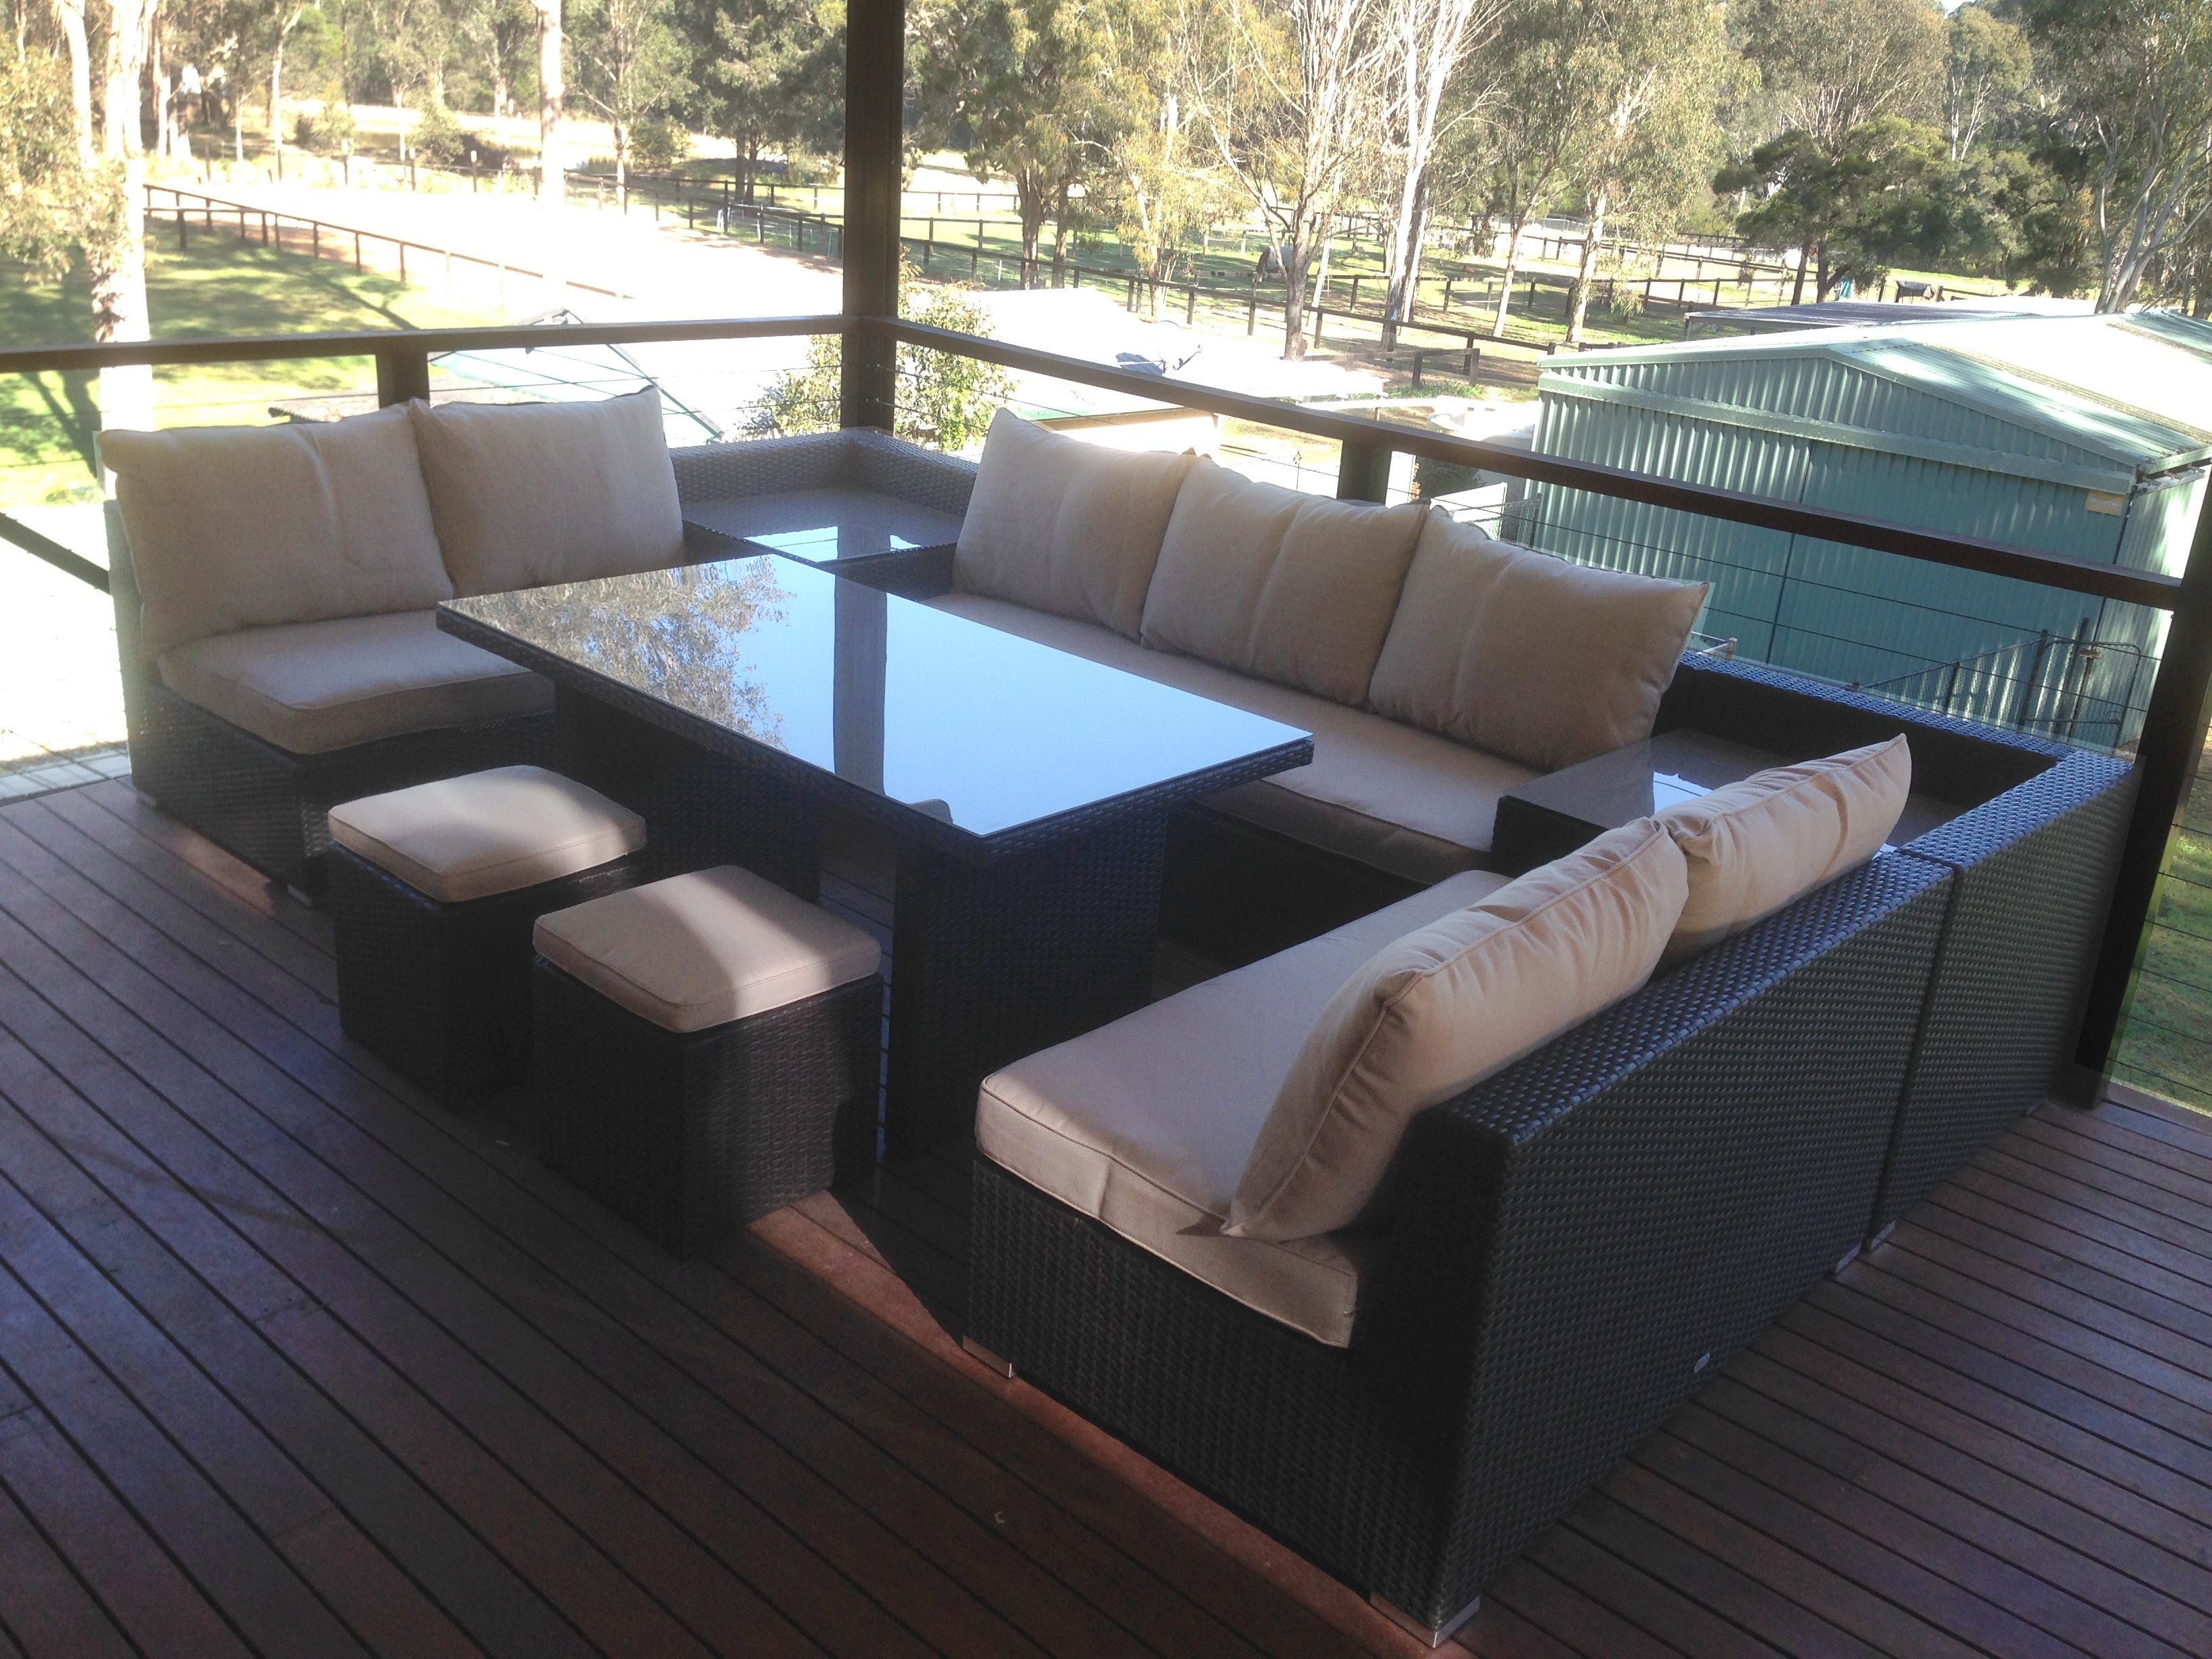 floor outside from lounges cupboard the simple around wonderful pattern and outdoor decorate landscape of your design amusing garden lounge patio on modern furniture new with